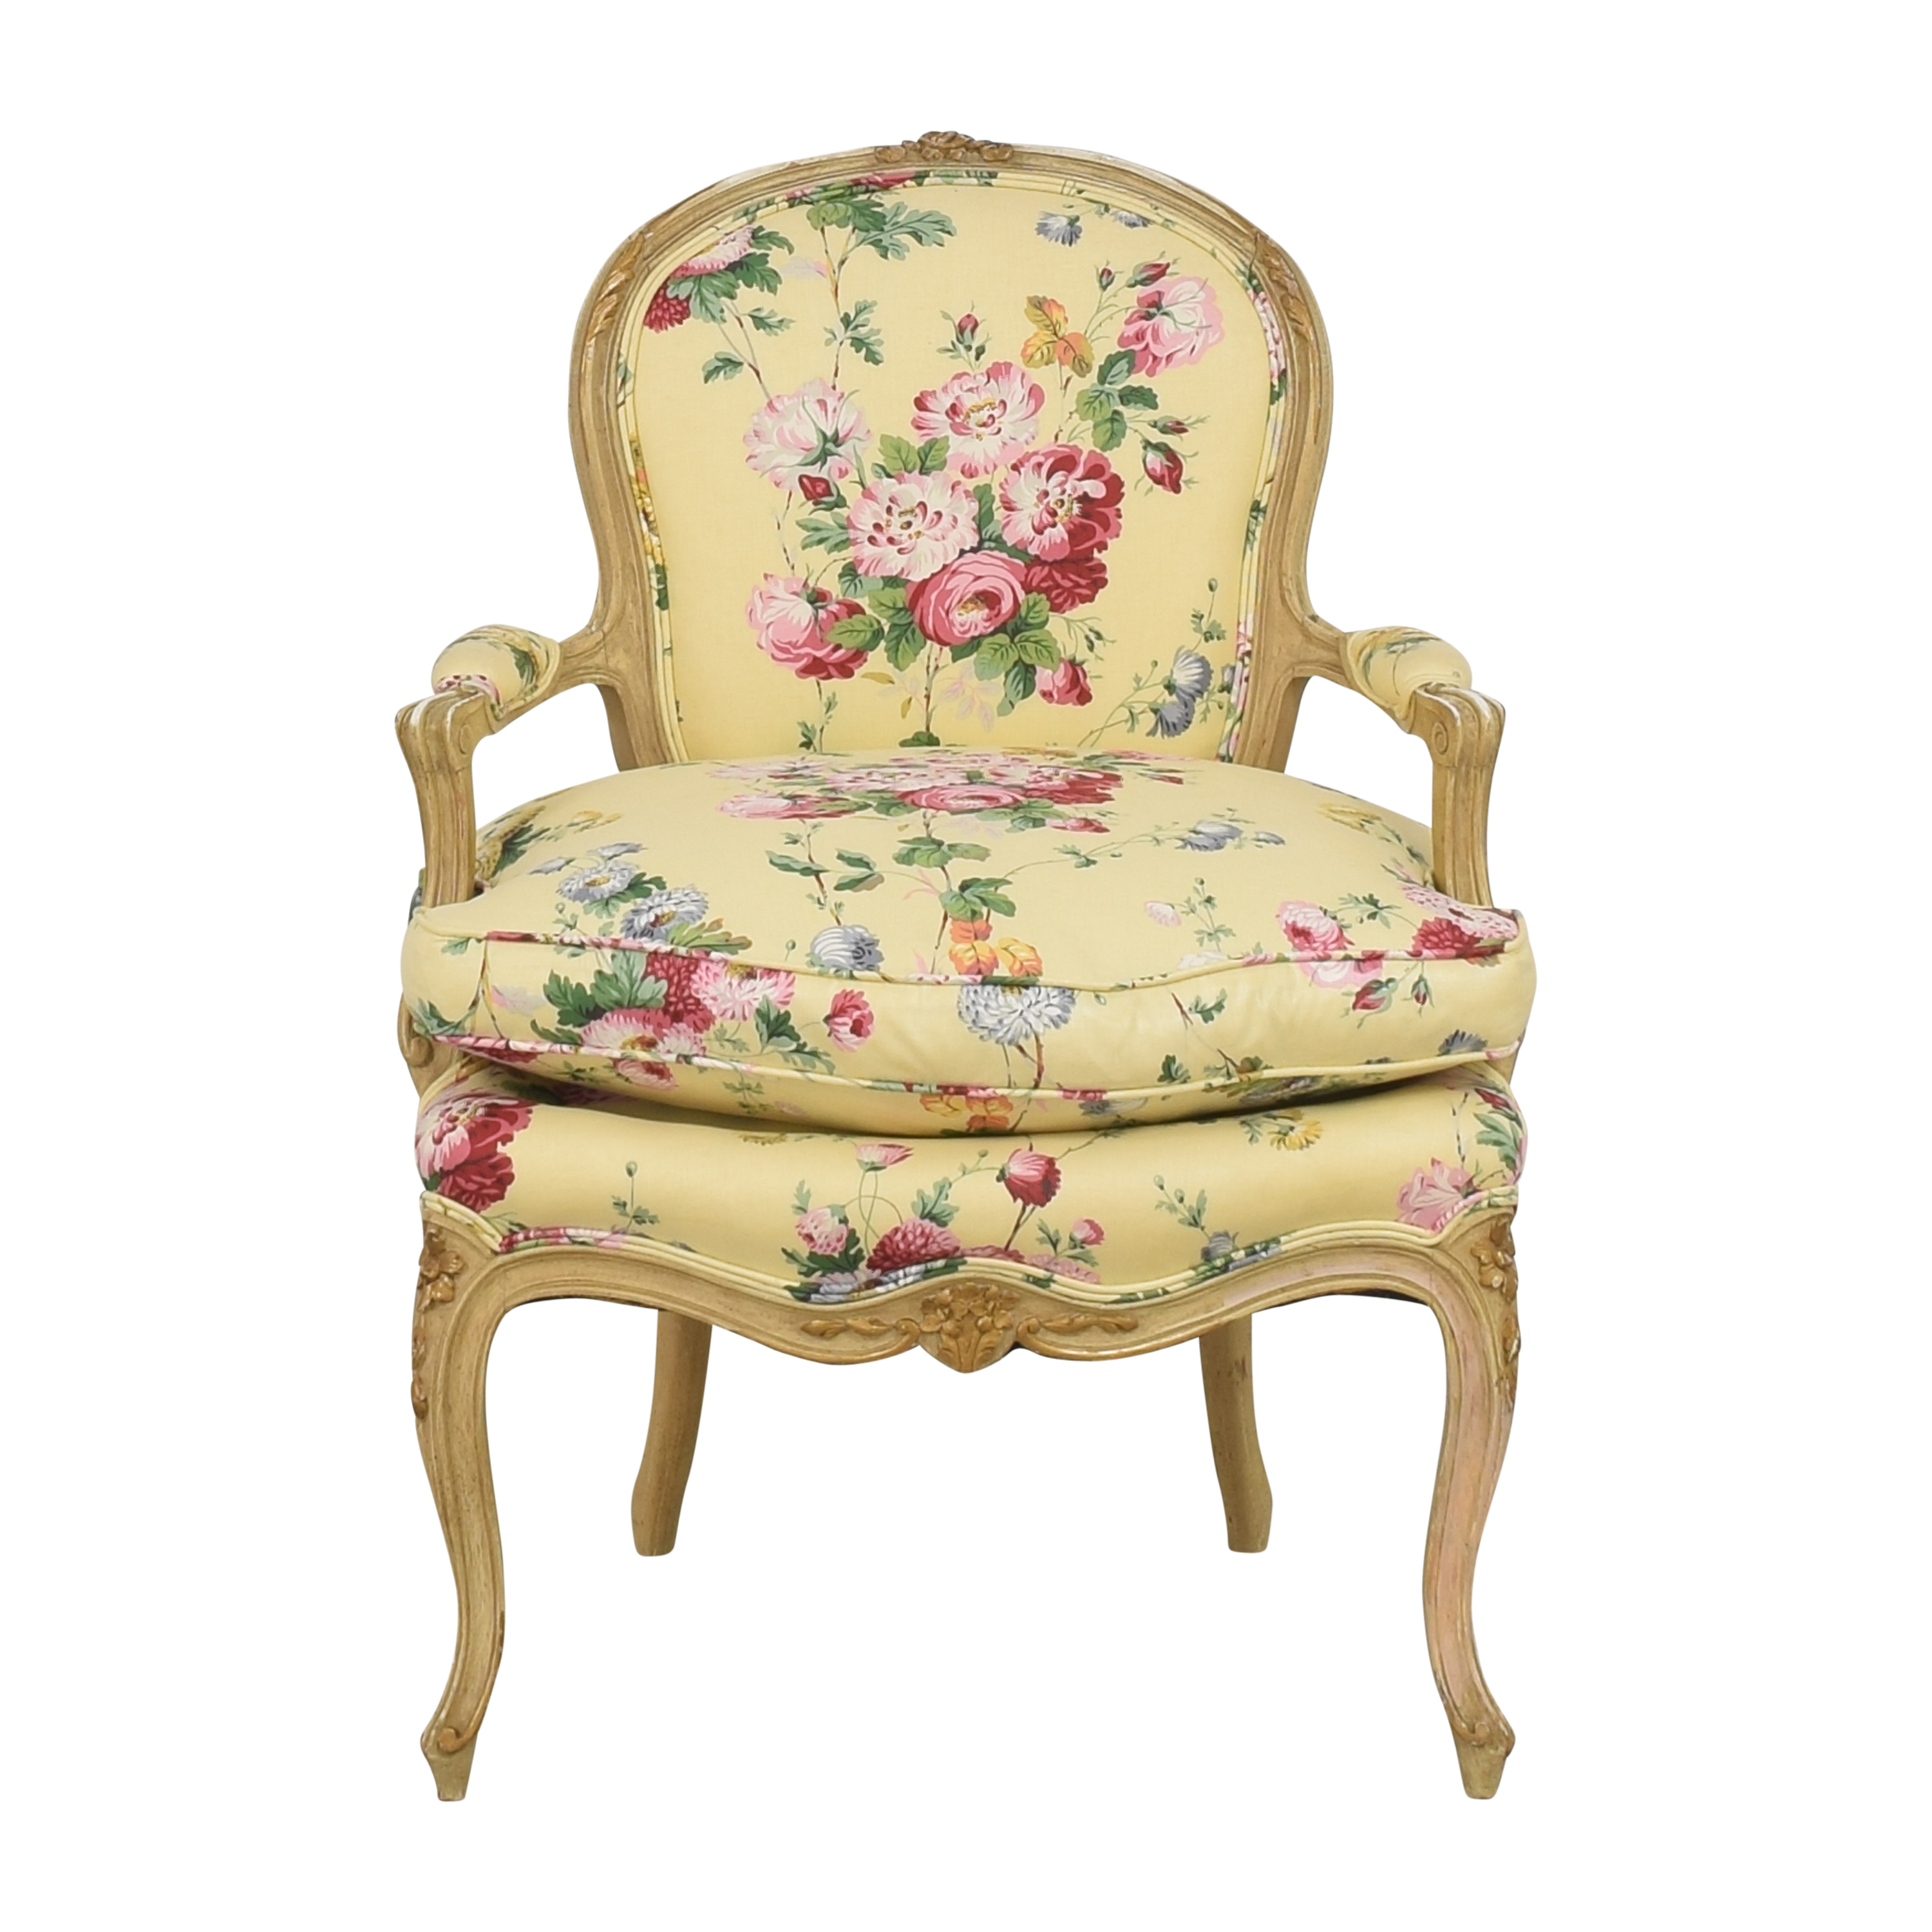 buy Brunschwig & Fils Brunschwig & Fils Custom Floral Chair online